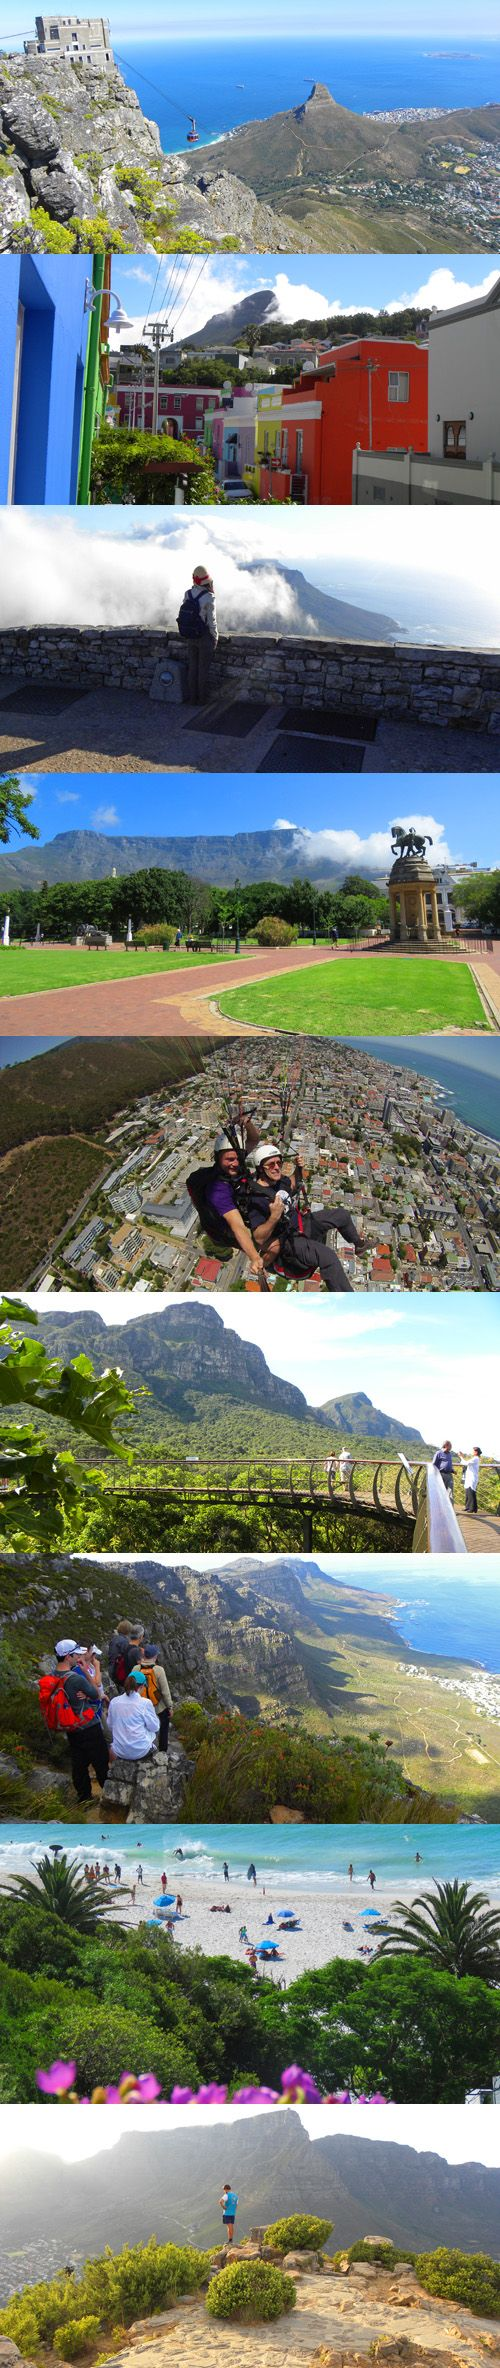 What to See and Do in Cape Town, South Africa: http://bbqboy.net/cape-town-travel-tips/ #capetown #southafrica